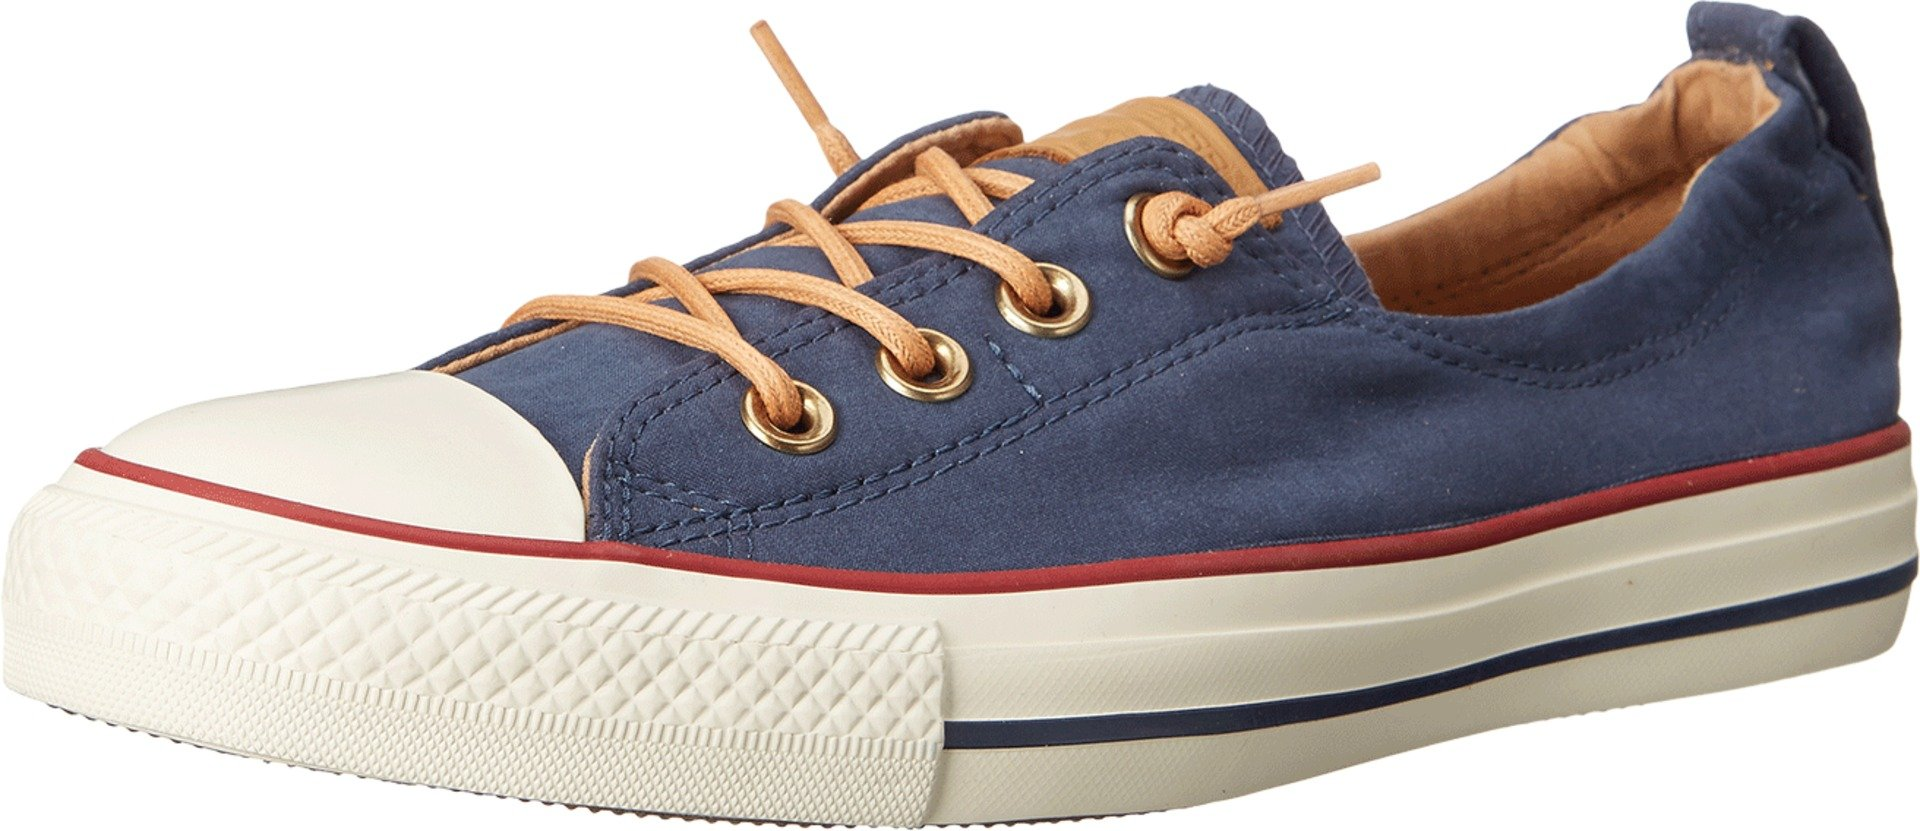 Converse Chuck Taylor All Star Shoreline Navy Red Lace-Up Sneaker - 6 B(M) US